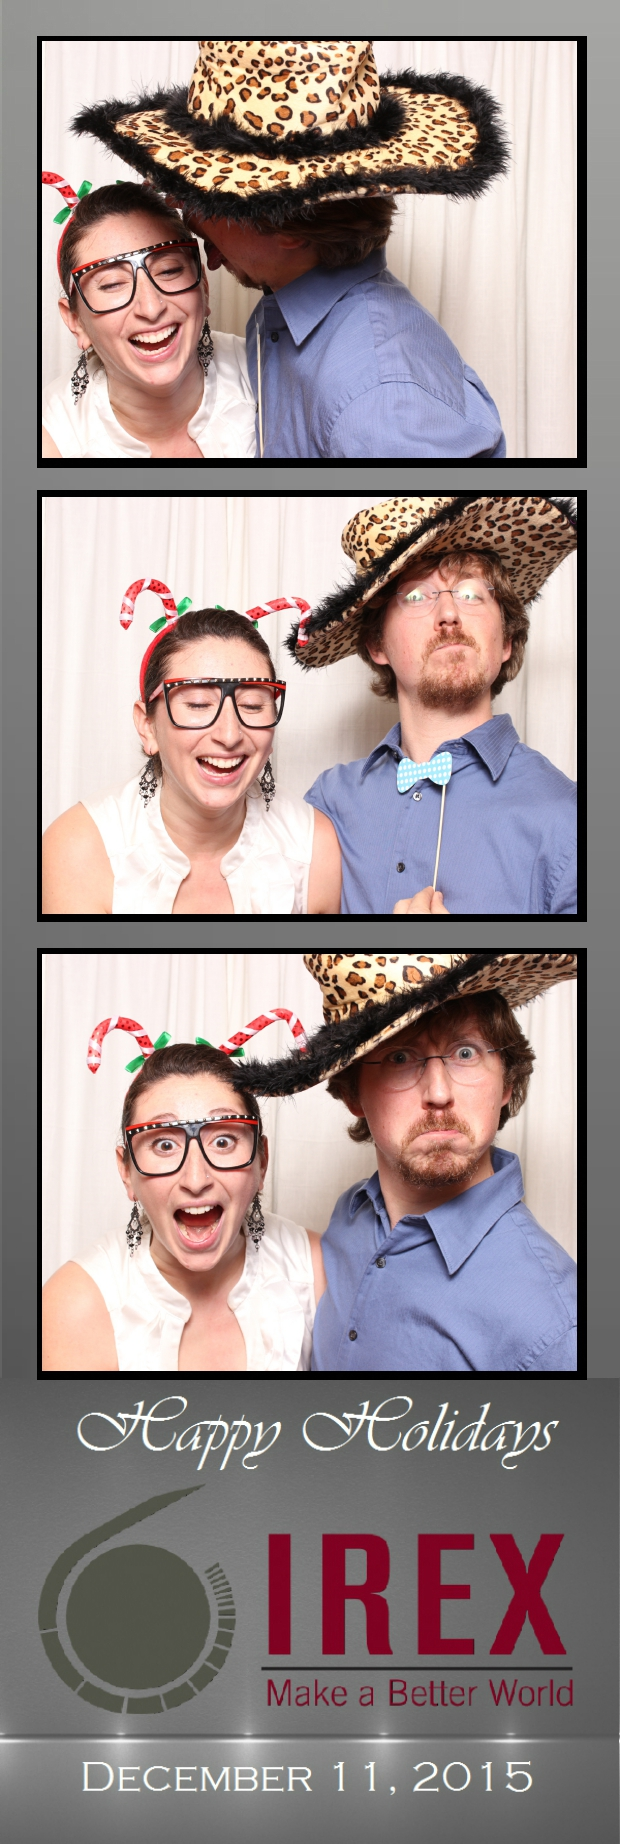 Guest House Events Photo Booth Strips IREX (79).jpg